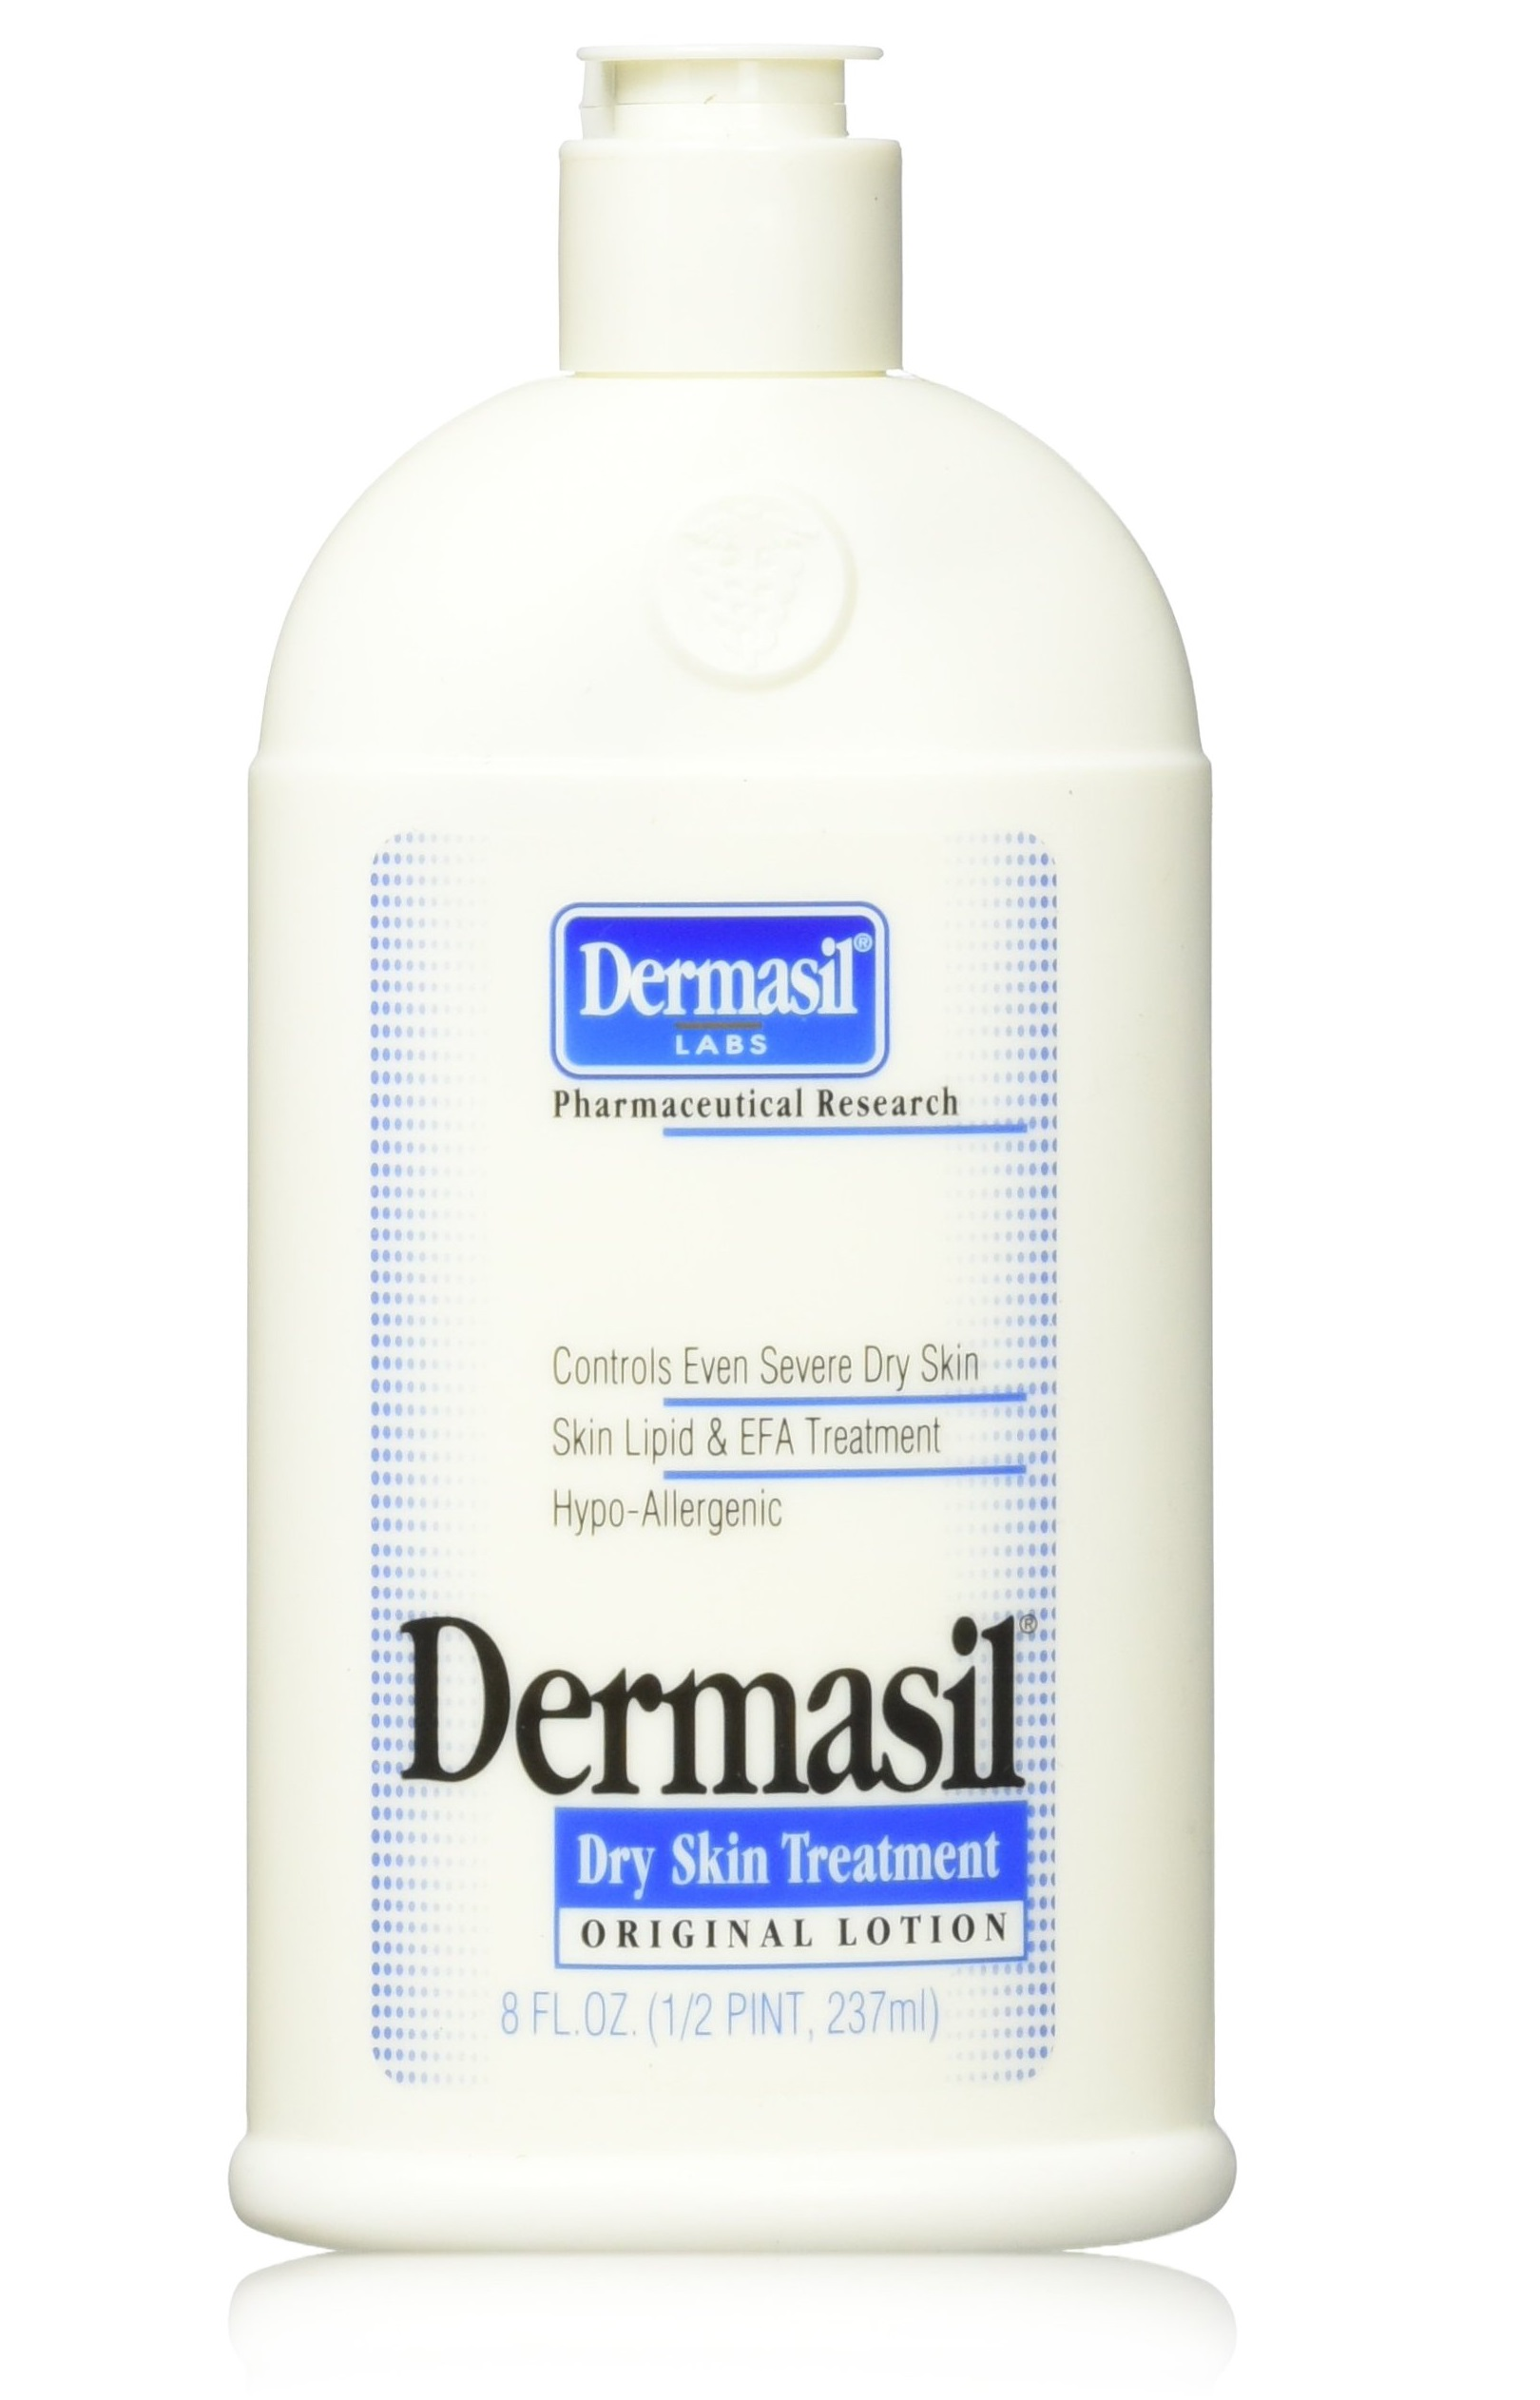 Dermasil Dry Skin Treatment - Original Lotion